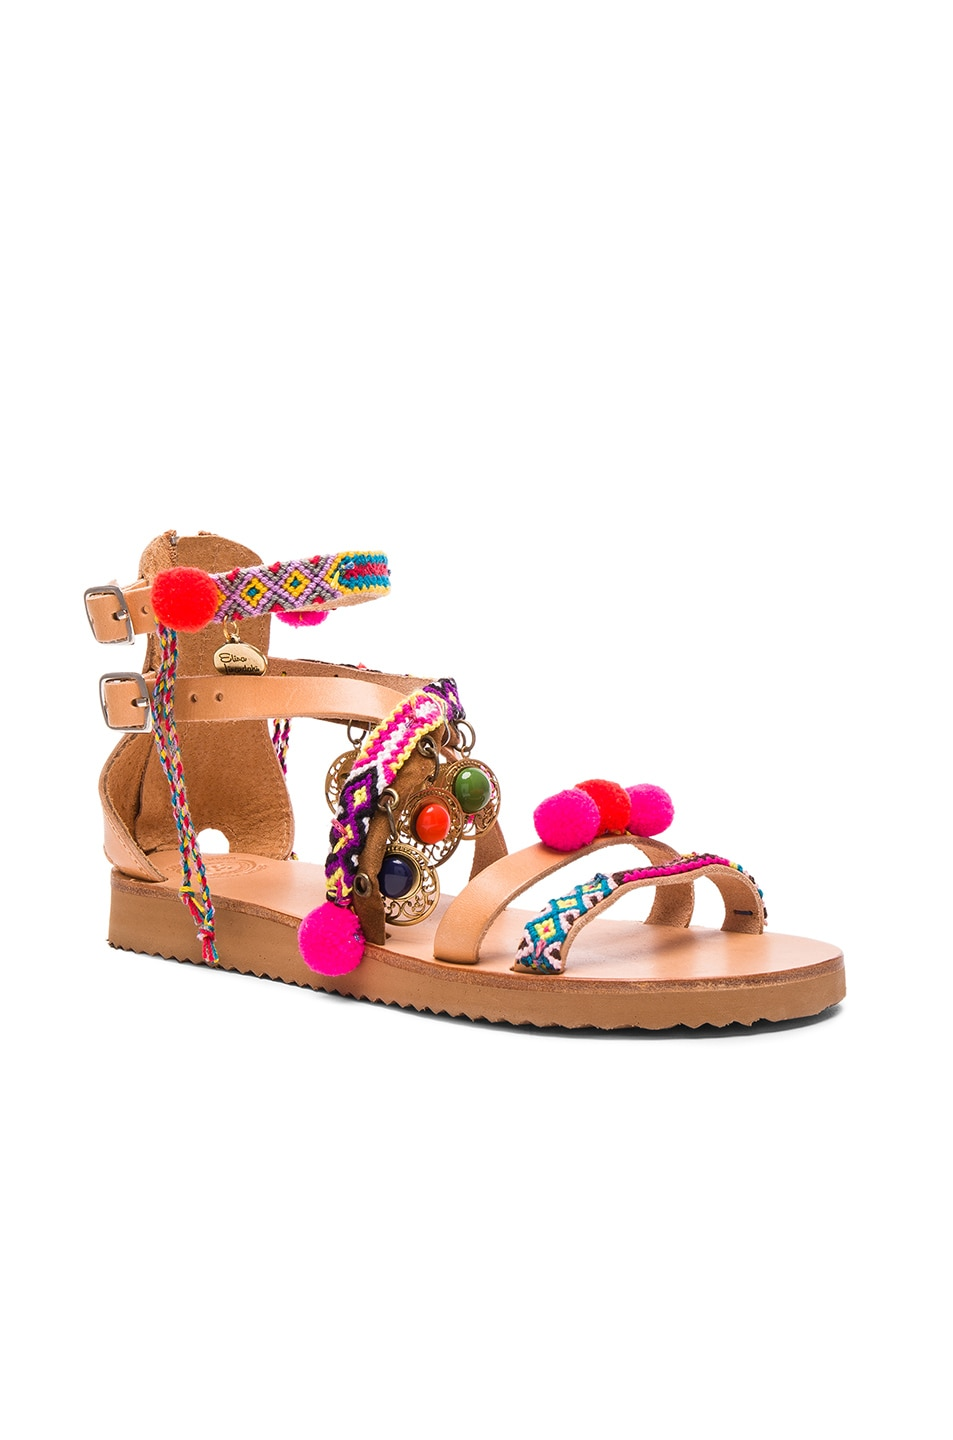 Image 3 of Elina Linardaki Leather Gipsy Spell Sandals in Multi